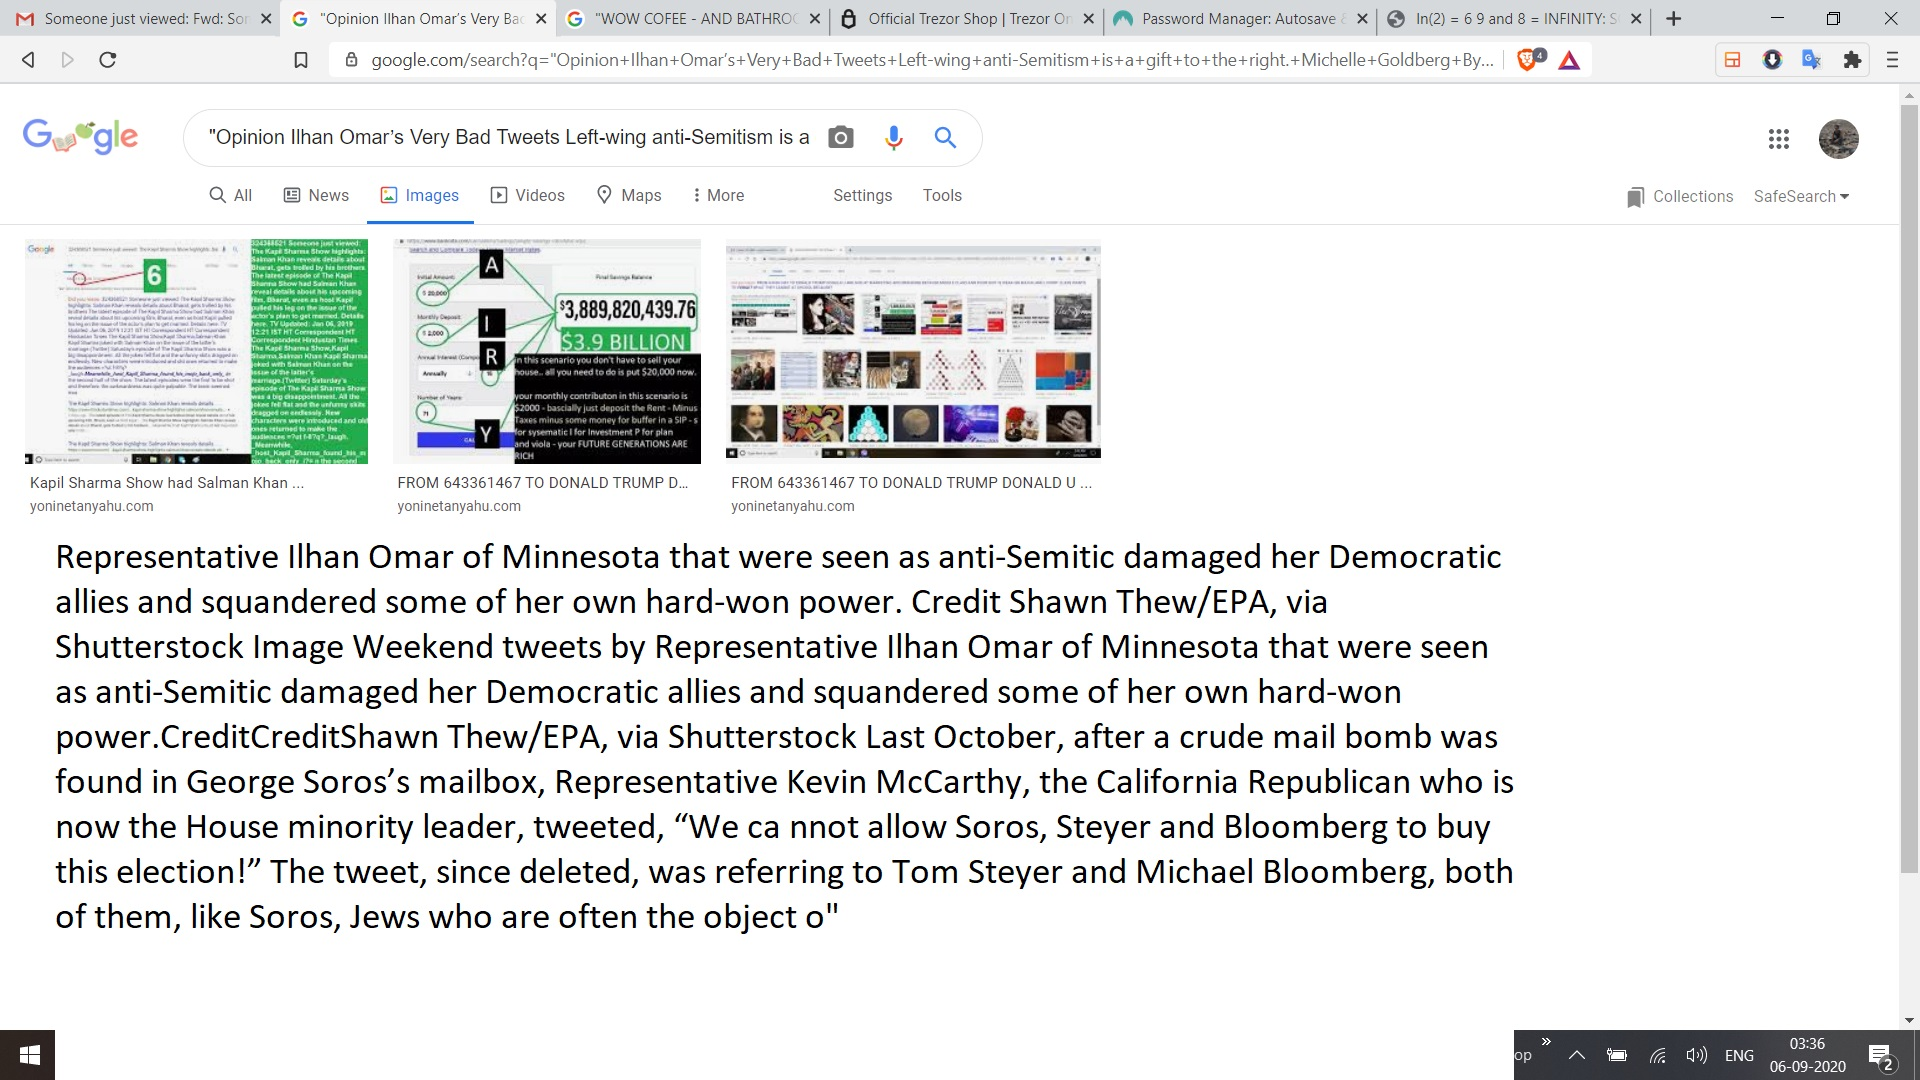 """""""Opinion Ilhan Omar's Very Bad Tweets Left-wing anti-Semitism is a gift to the right. Michelle Goldberg By Michelle Goldberg Opinion Columnist Feb. 11, 2019 938 Weekend tweets by Representative Ilhan Omar of Minnesota that were seen as anti-Semitic damaged her Democratic allies and squandered some of her own hard-won power. Credit Shawn Thew/EPA, via Shutterstock Image Weekend tweets by Representative Ilhan Omar of Minnesota that were seen as anti-Semitic damaged her Democratic allies and squandered some of her own hard-won power.CreditCreditShawn Thew/EPA, via Shutterstock Last October, after a crude mail bomb was found in George Soros's mailbox, Representative Kevin McCarthy, the California Republican who is now the House minority leader, tweeted, """"We ca nnot allow Soros, Steyer and Bloomberg to buy this election!"""" The tweet, since deleted, was referring to Tom Steyer and Michael Bloomberg, both of them, like Soros, Jews who are often the object o"""""""